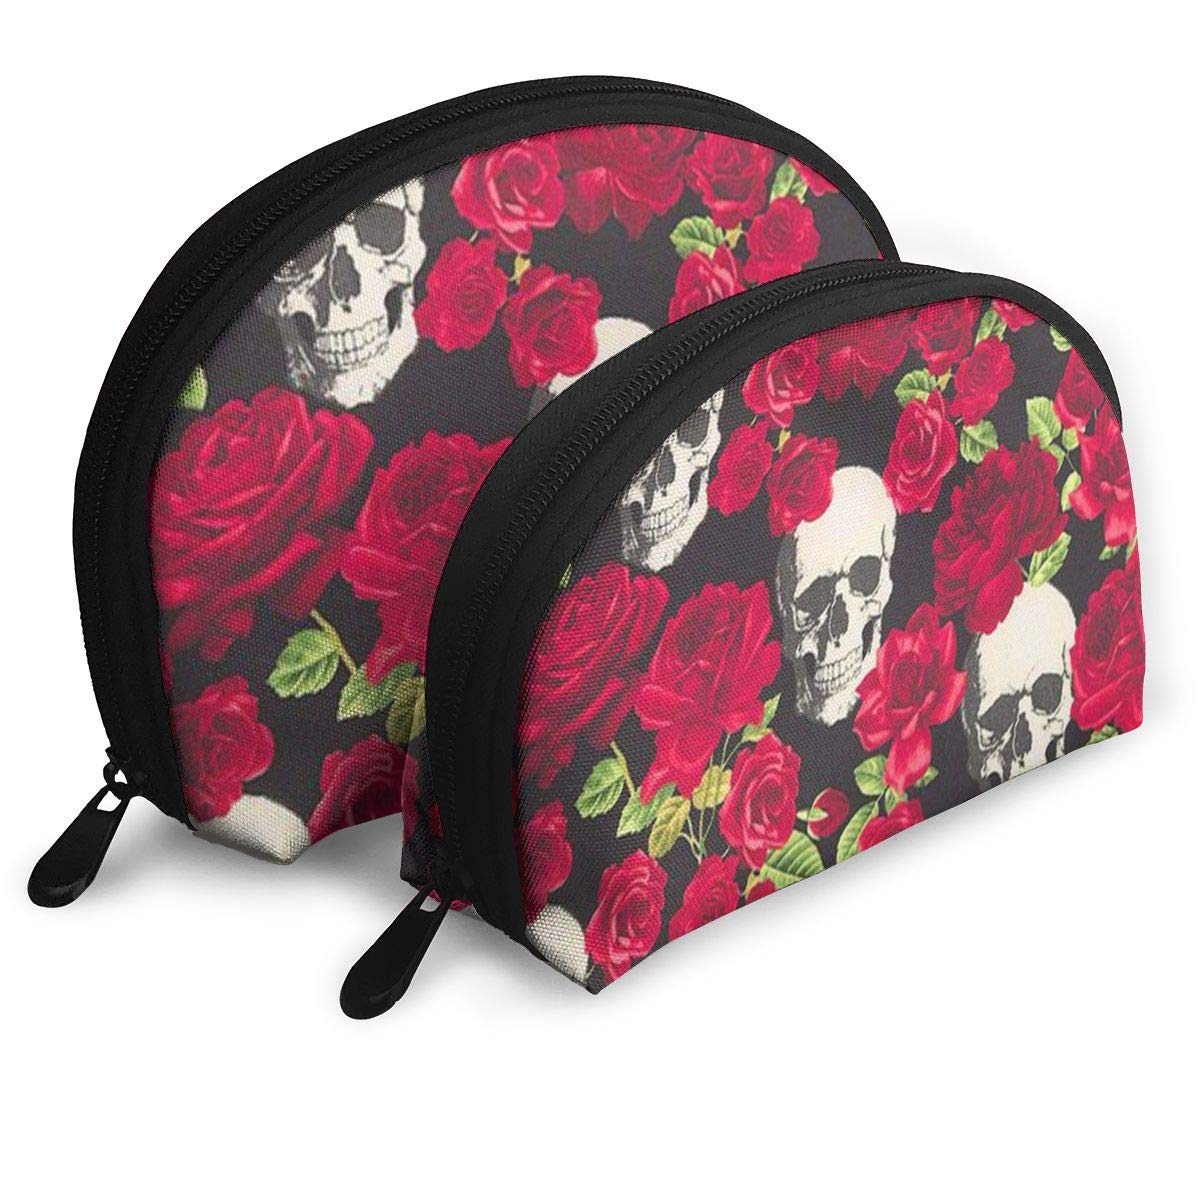 Half Moon Cosmetic Beauty Bag,Skull Rose Handy Cosmetic Pouch Clutch Makeup Bag For Women Girls